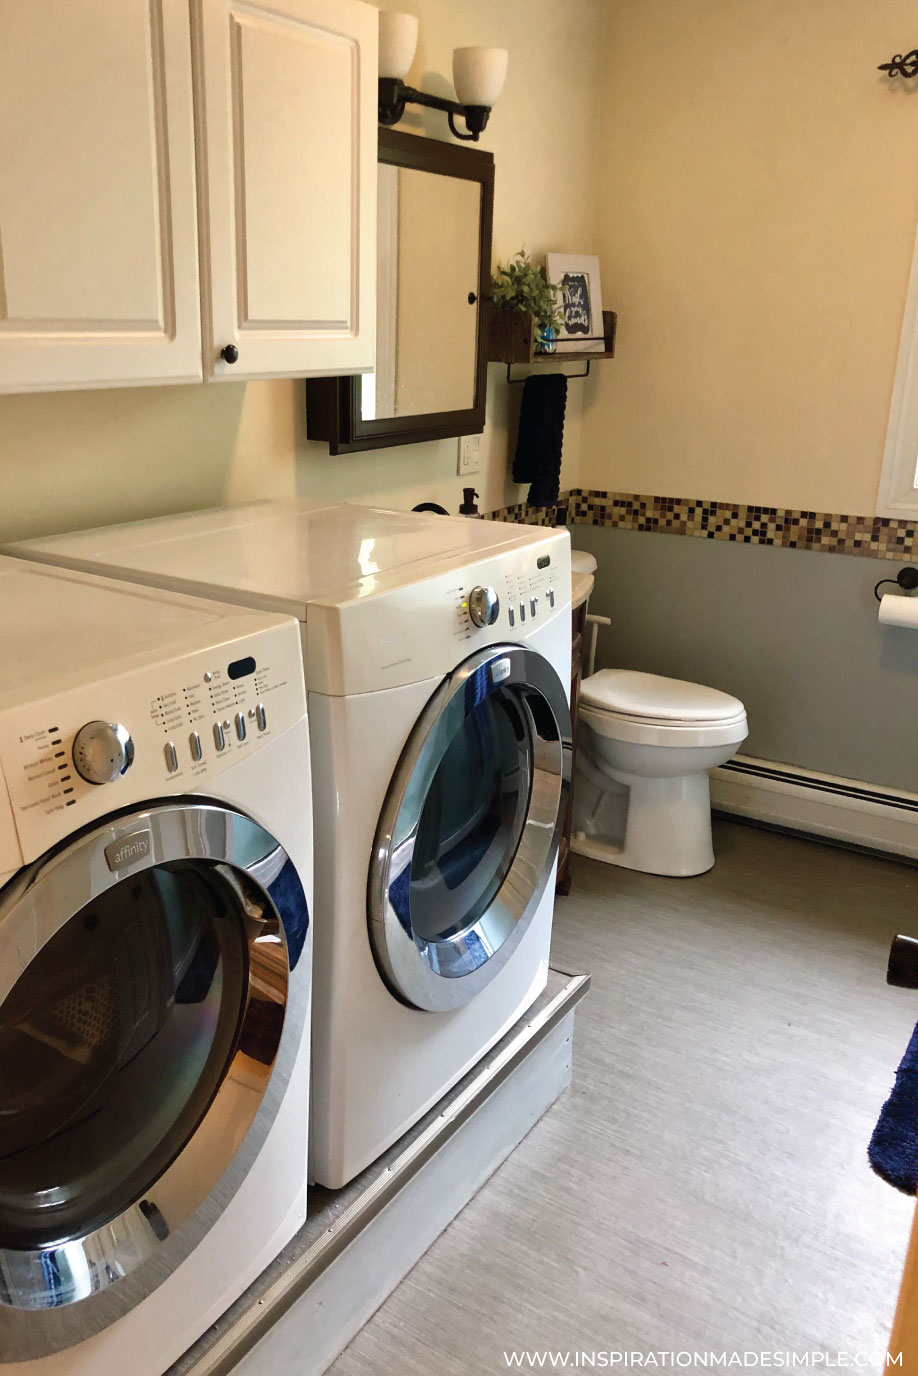 Bathroom/Laundry Room Before